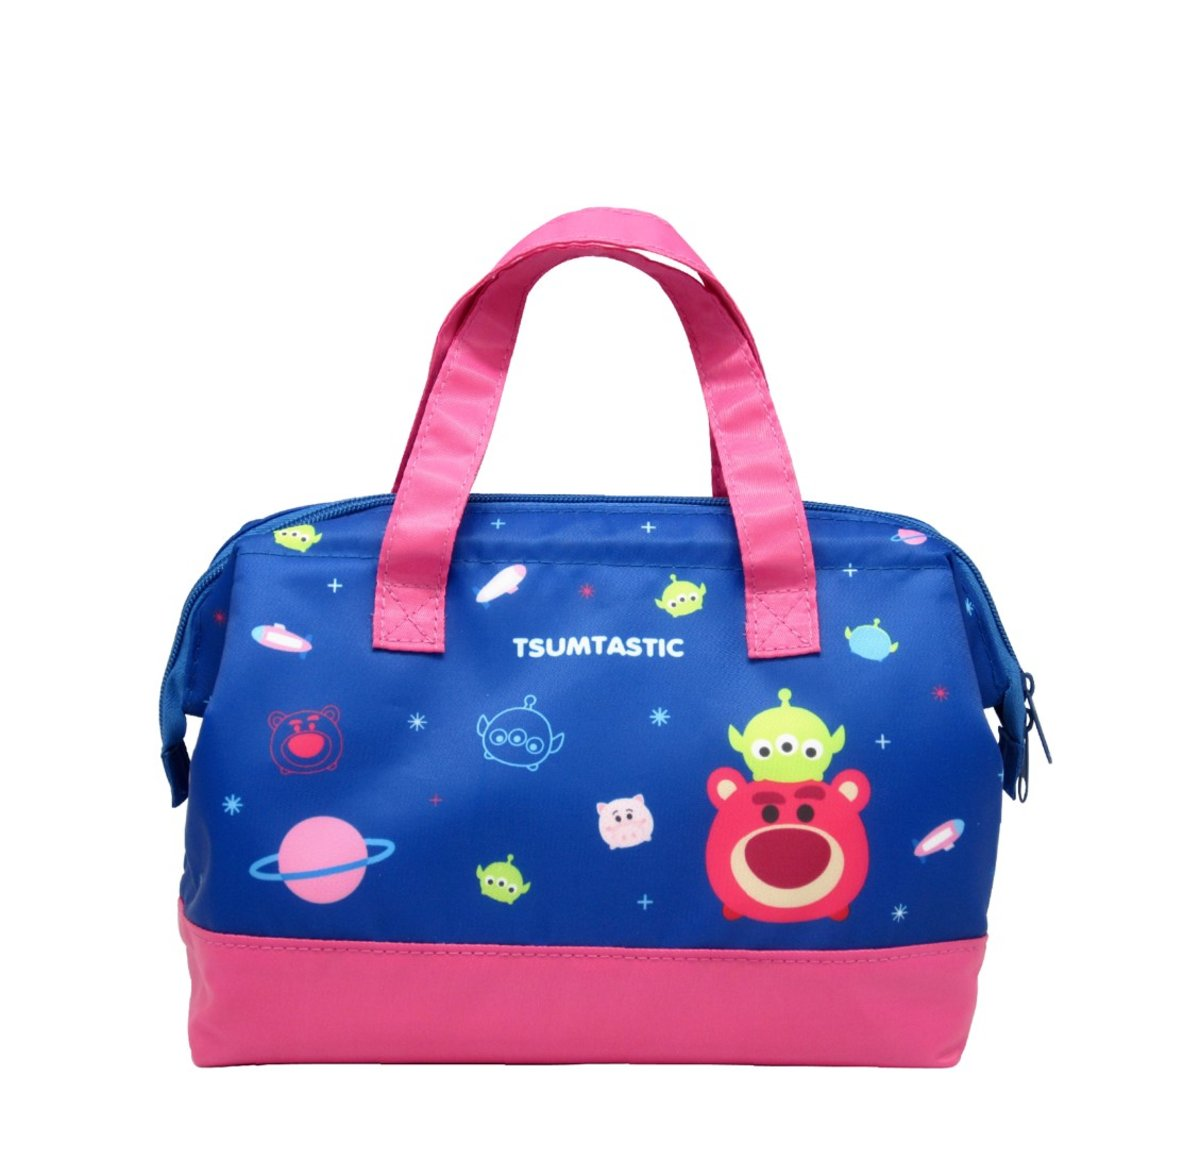 Tsum Tsum  Insulation Bag Lunch C